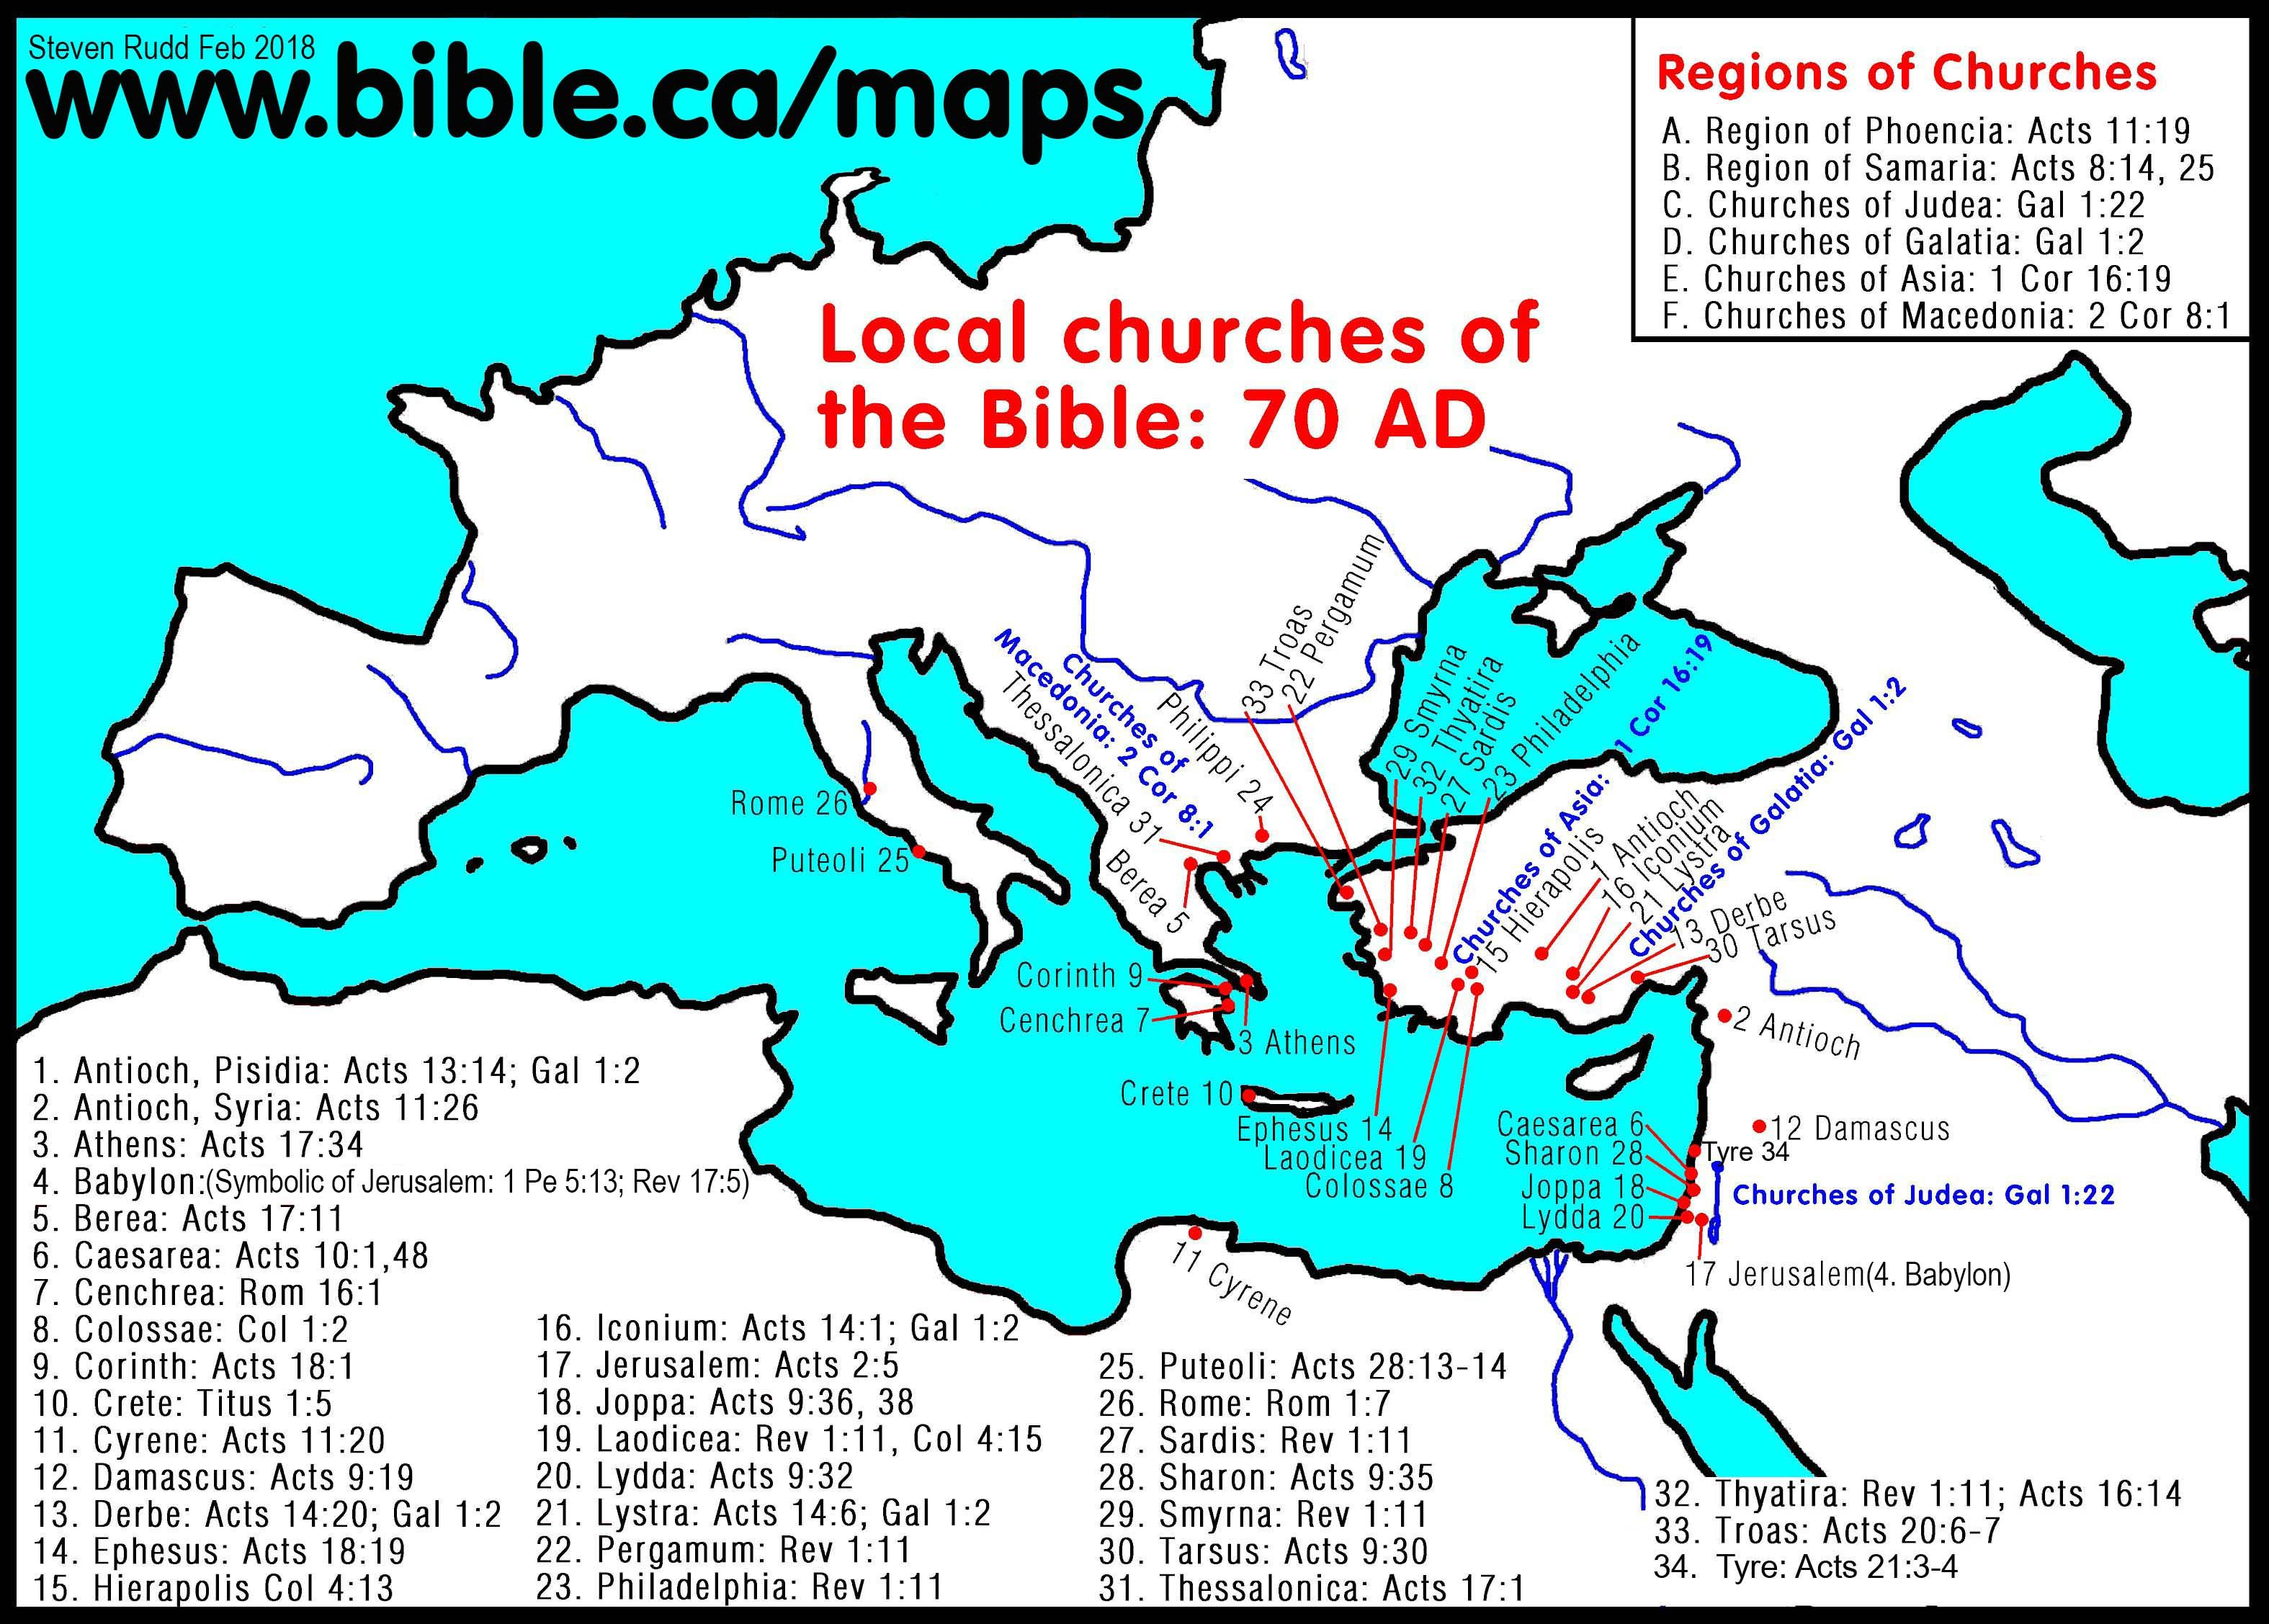 Http Www Bible Ca Maps Maps Ancient Churches Bible 70ad Jpg